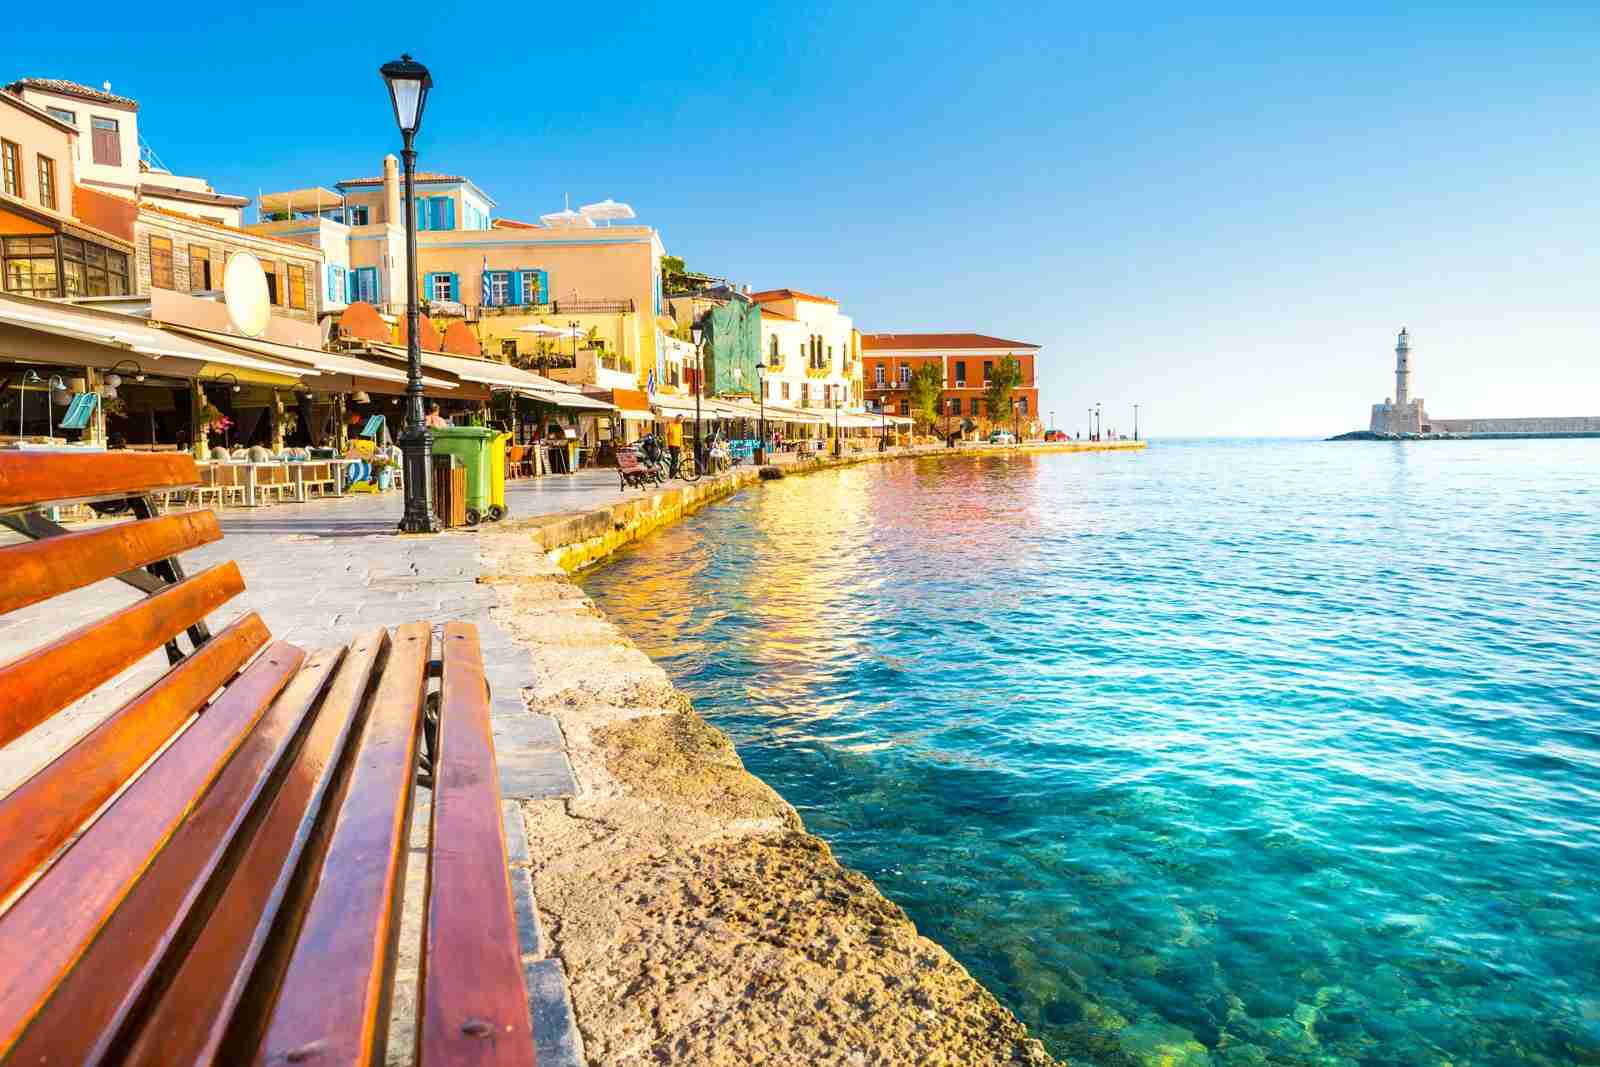 Chania, Crete. (Photo by Aleh Varanishcha / Getty Images)